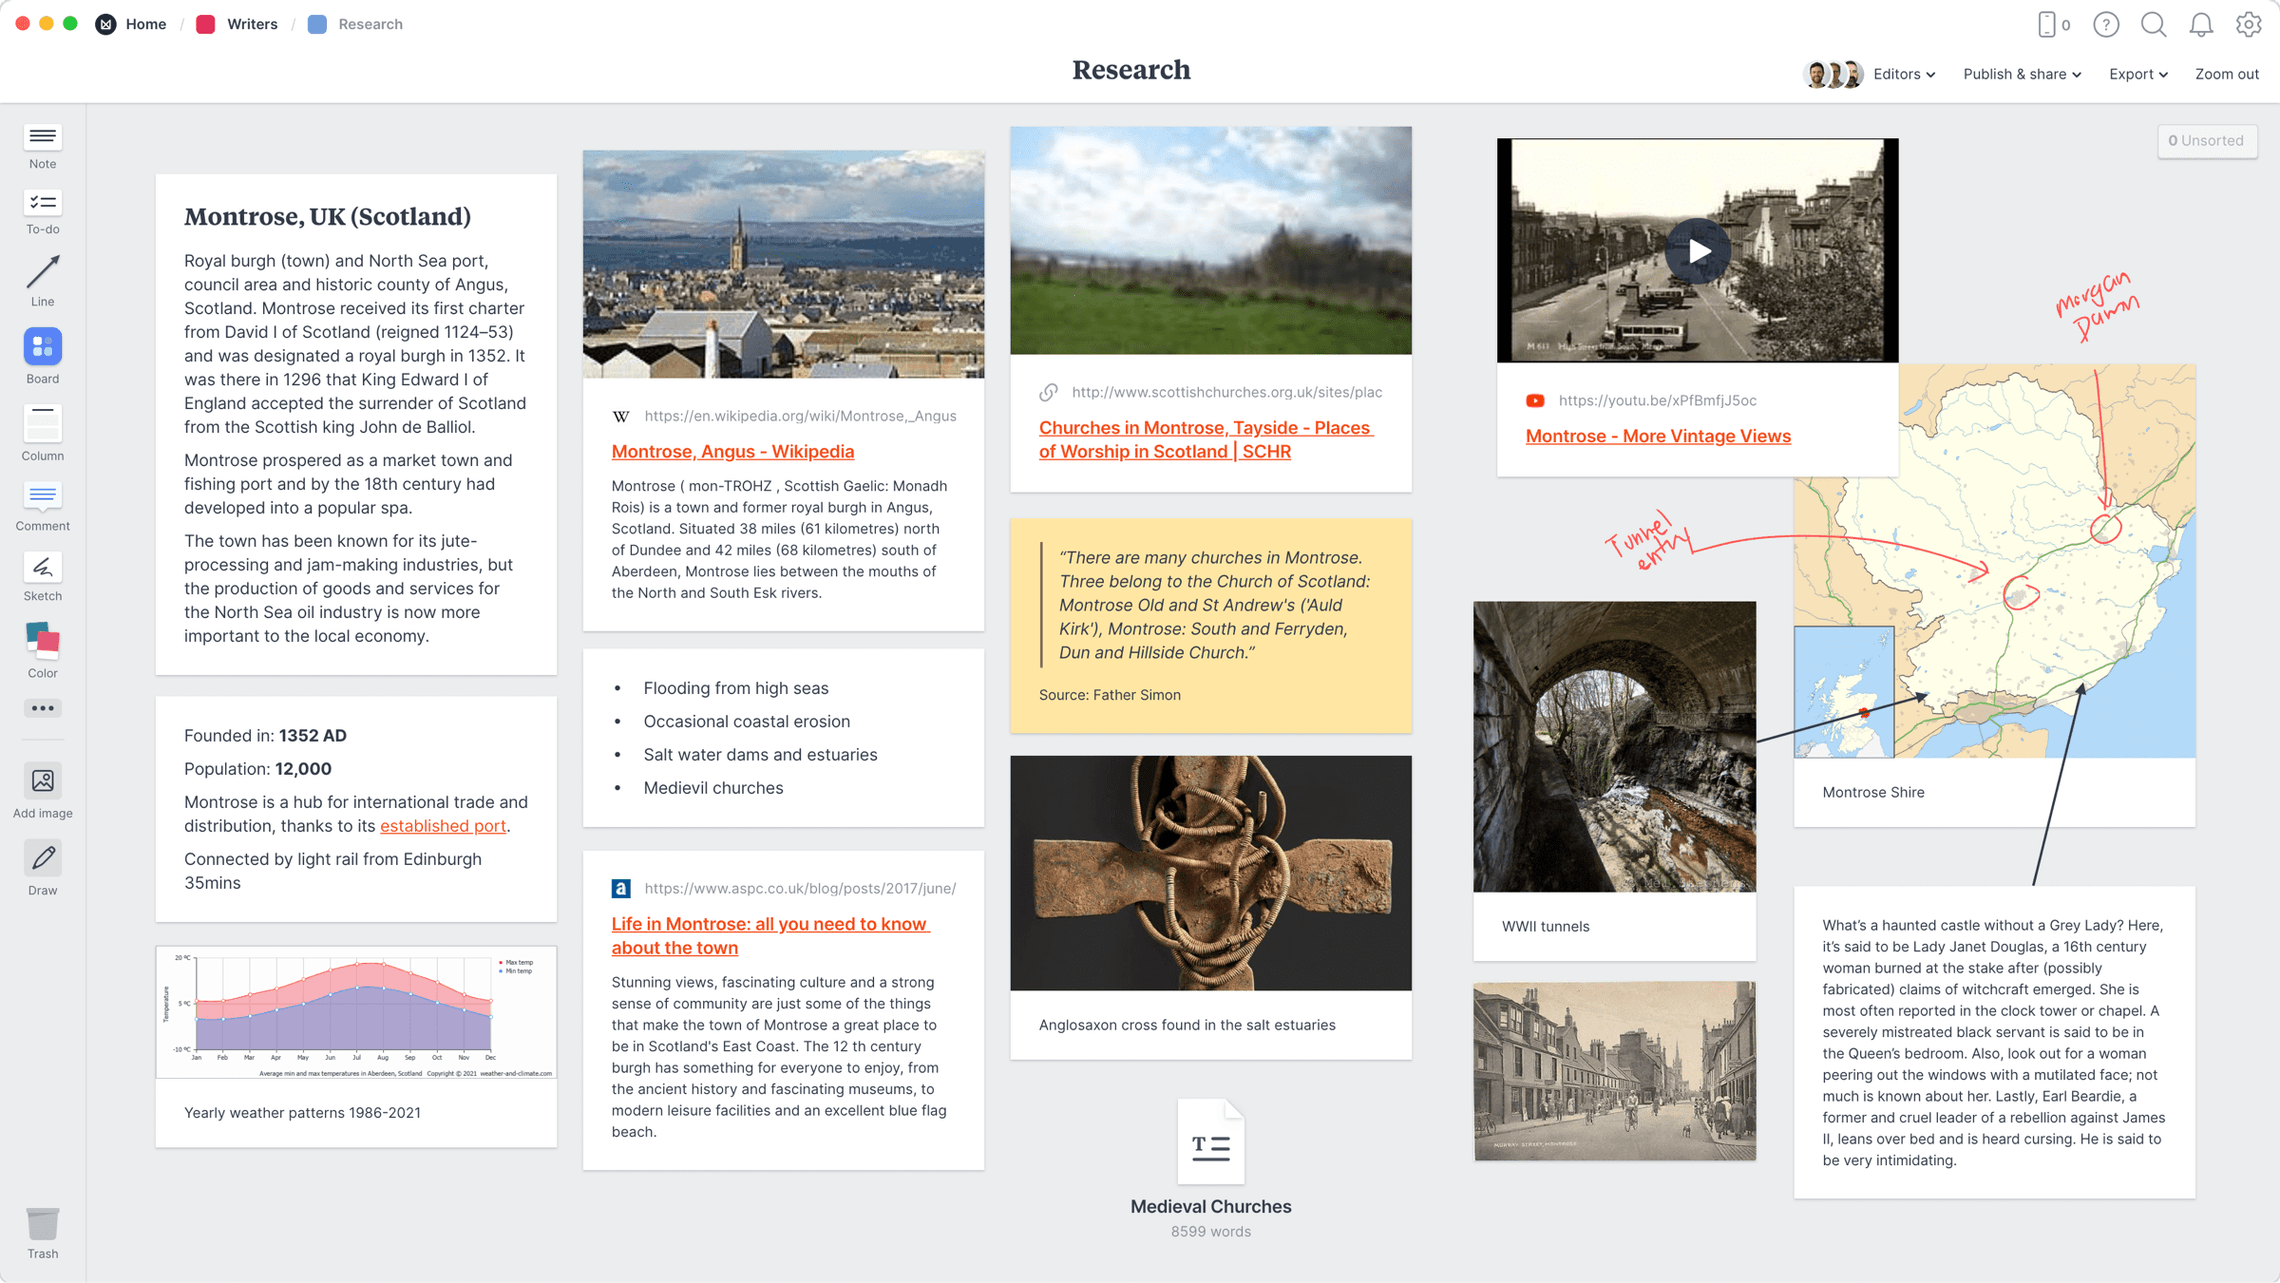 Research Template, within the Milanote app